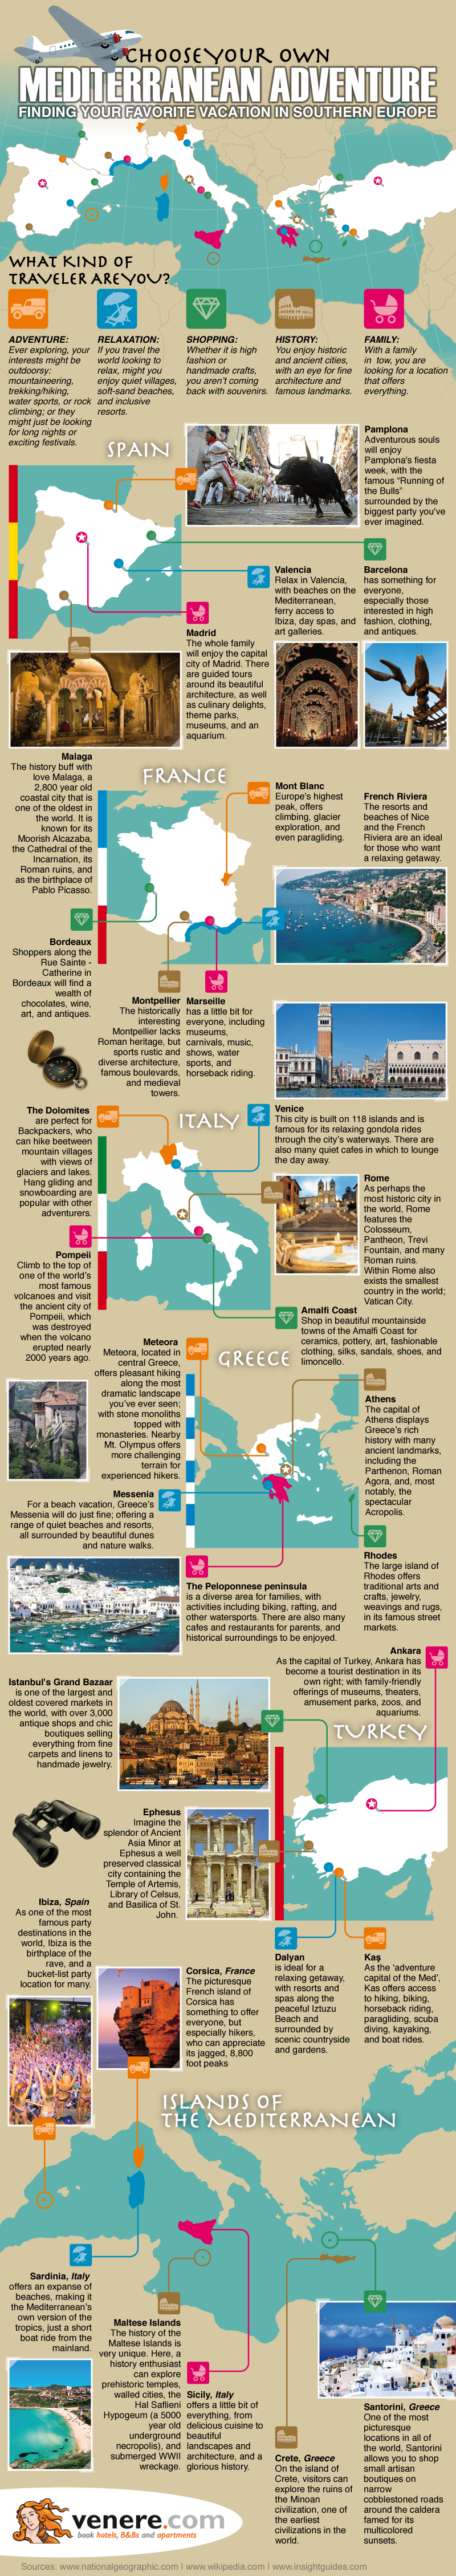 Infographic: Choose Your Own Mediterranean Adventure #infographic